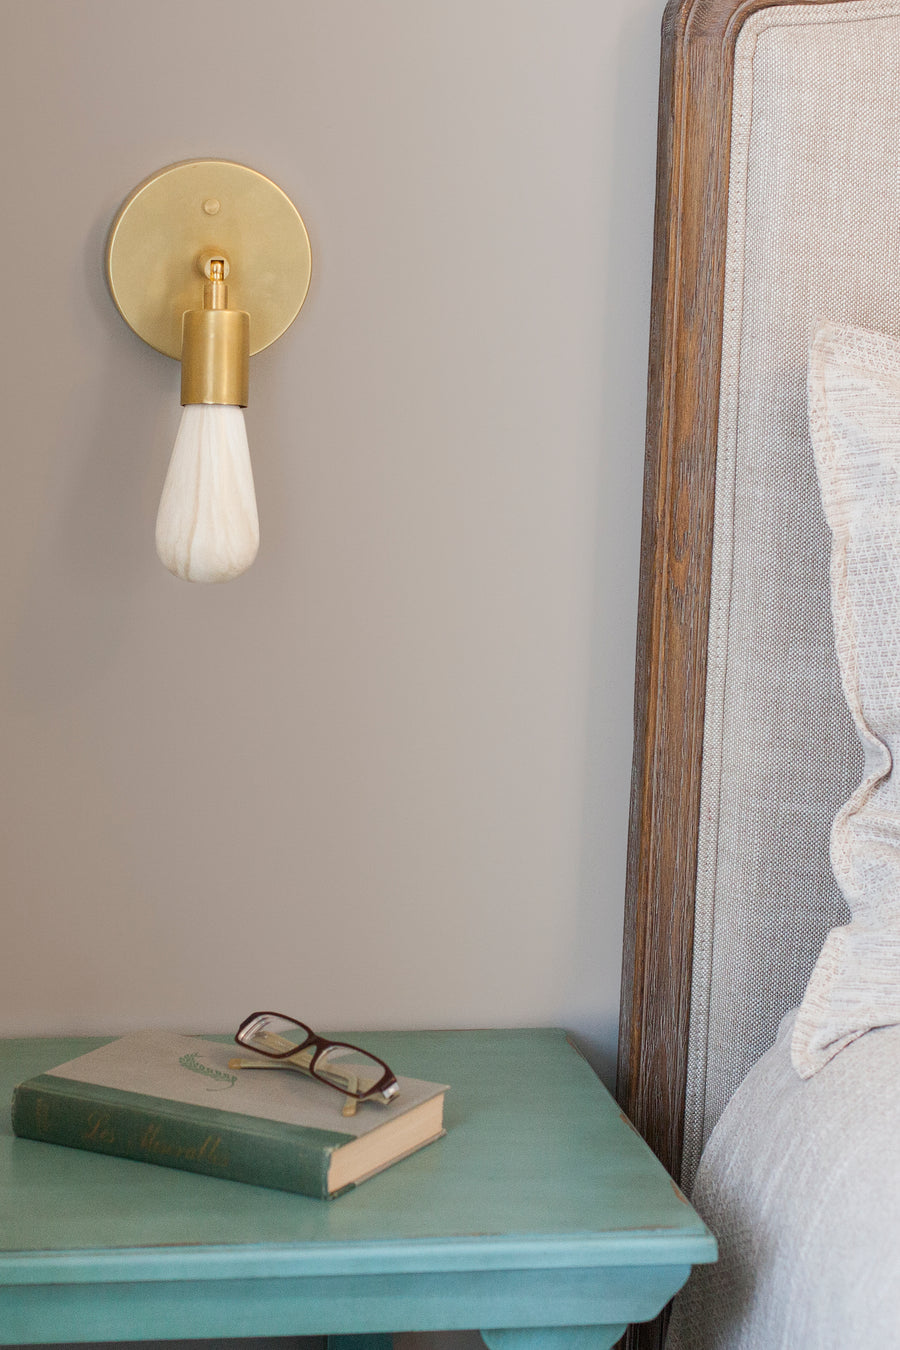 Light marble light bulb featured in stylish bedroom